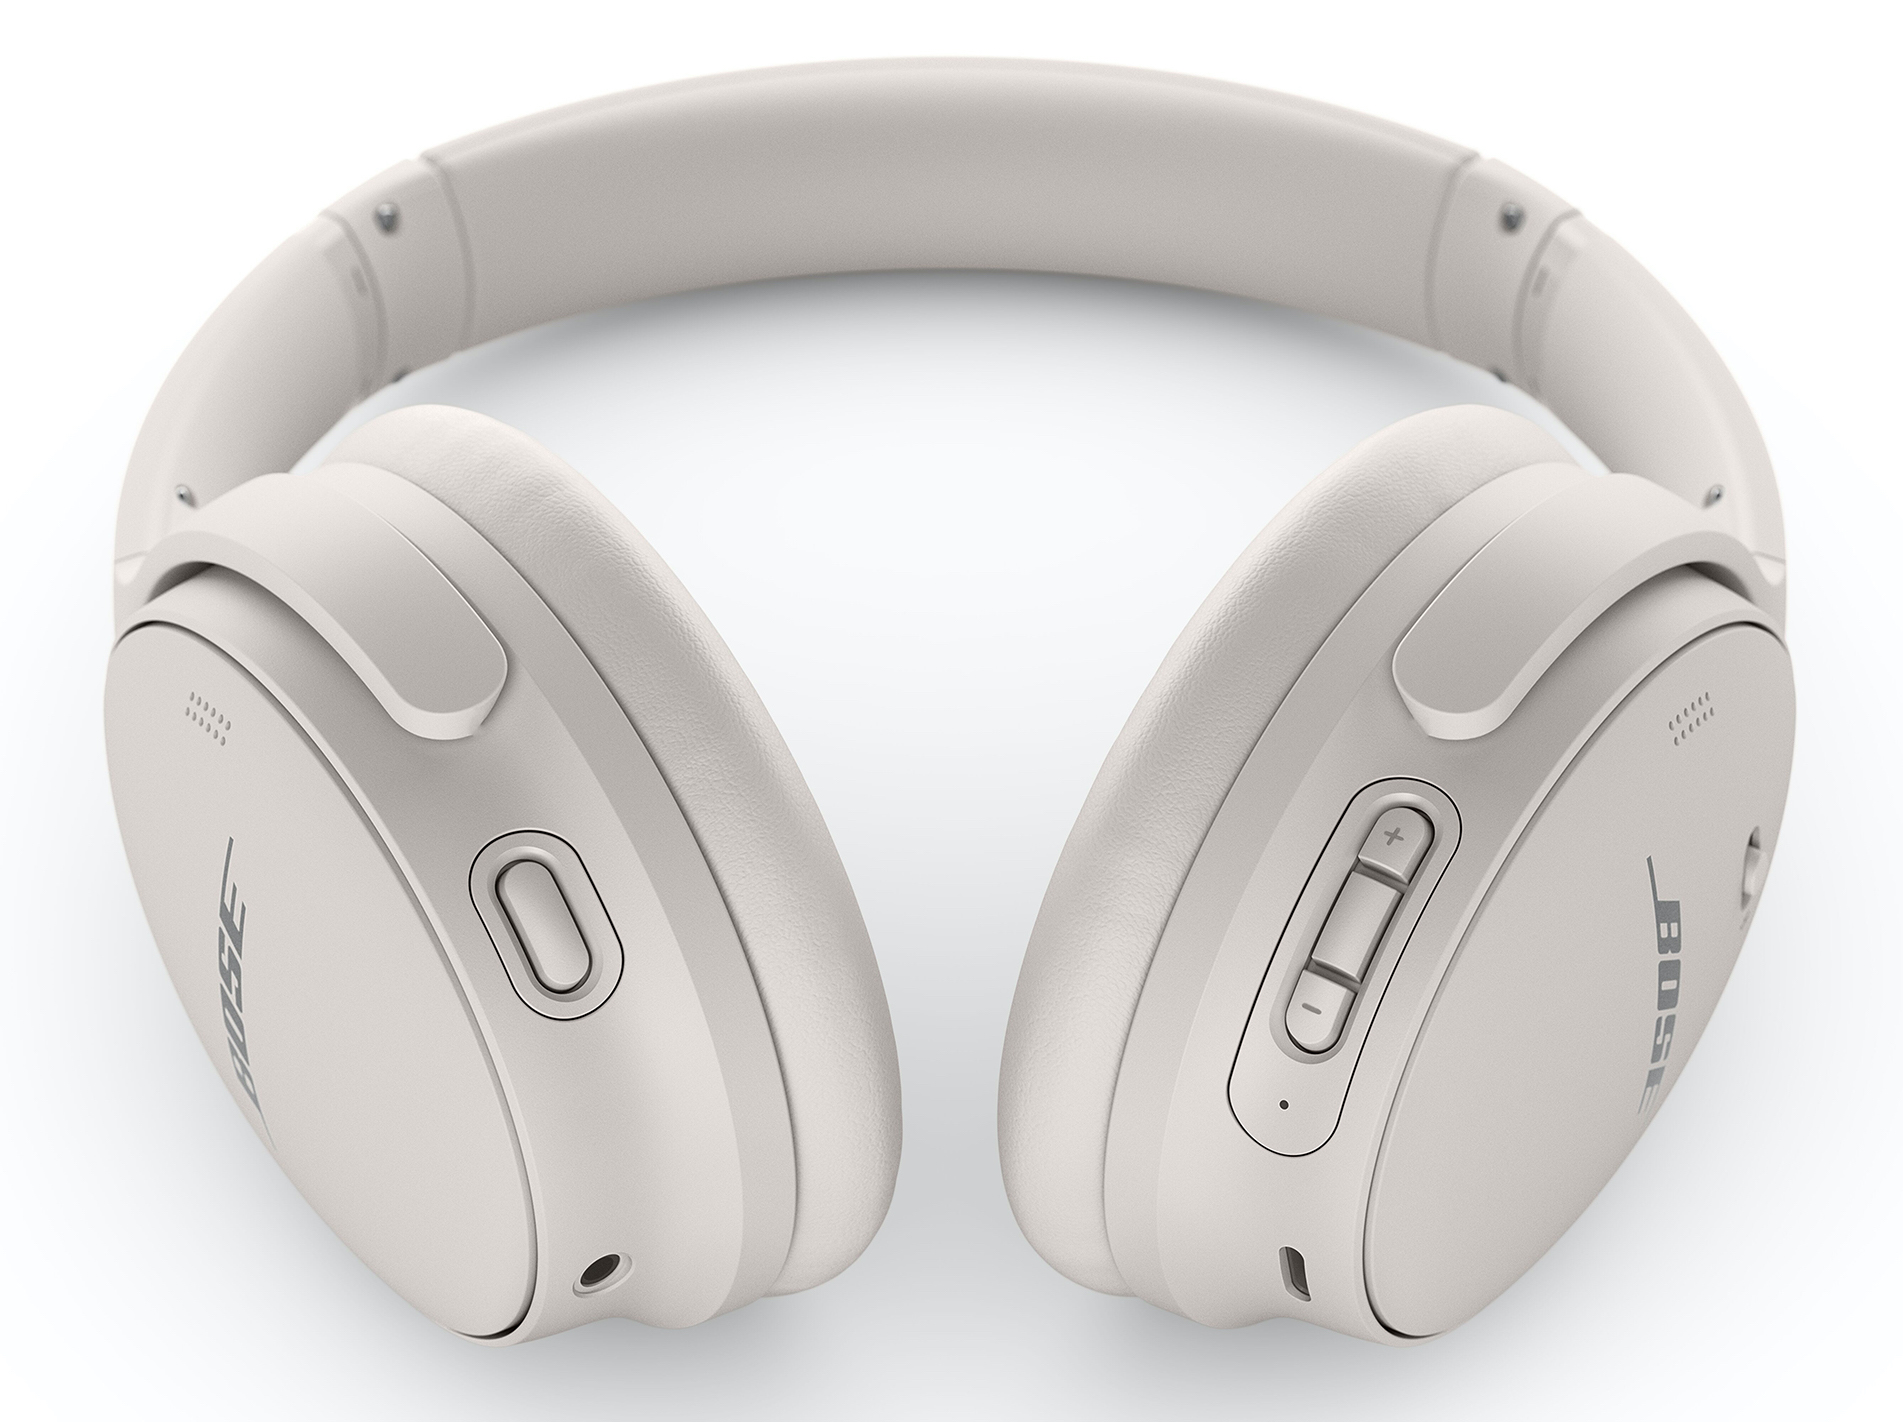 Bose QuietComfort 45 headphones add improved noise canceling, voice calling for 0